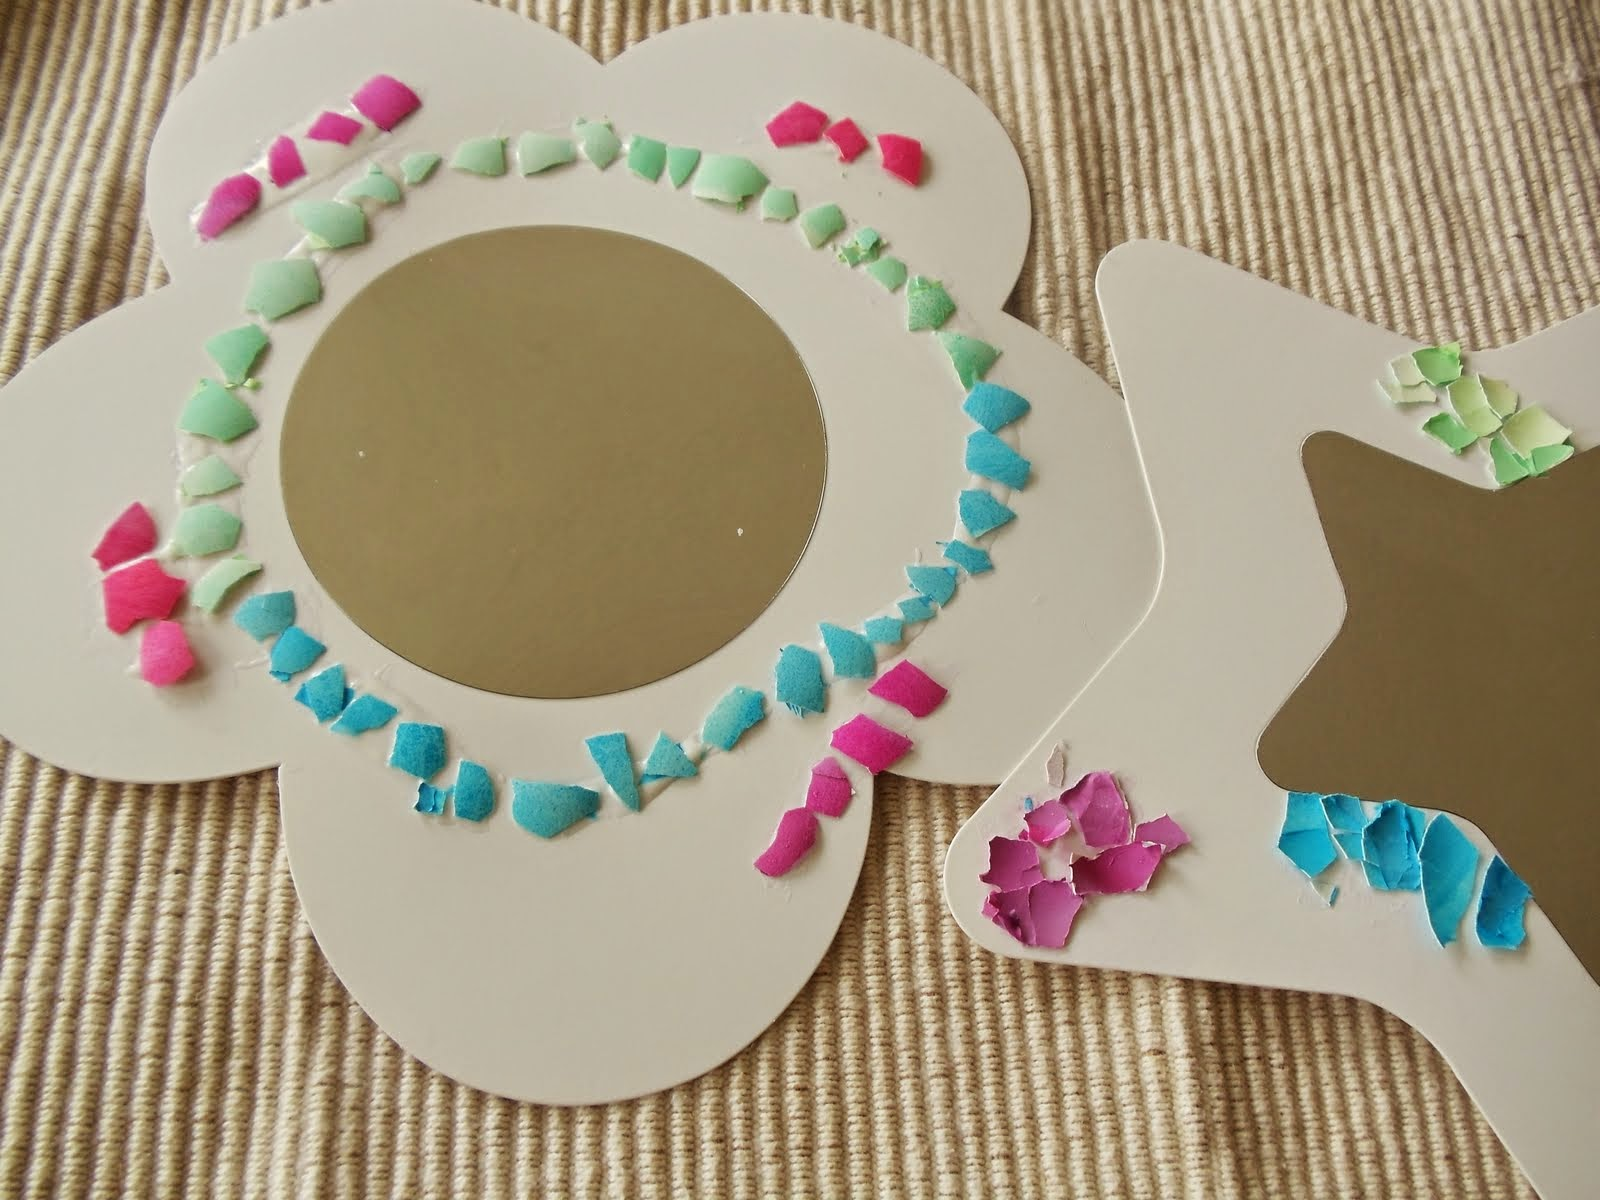 eggshell mosaic craft project for kids